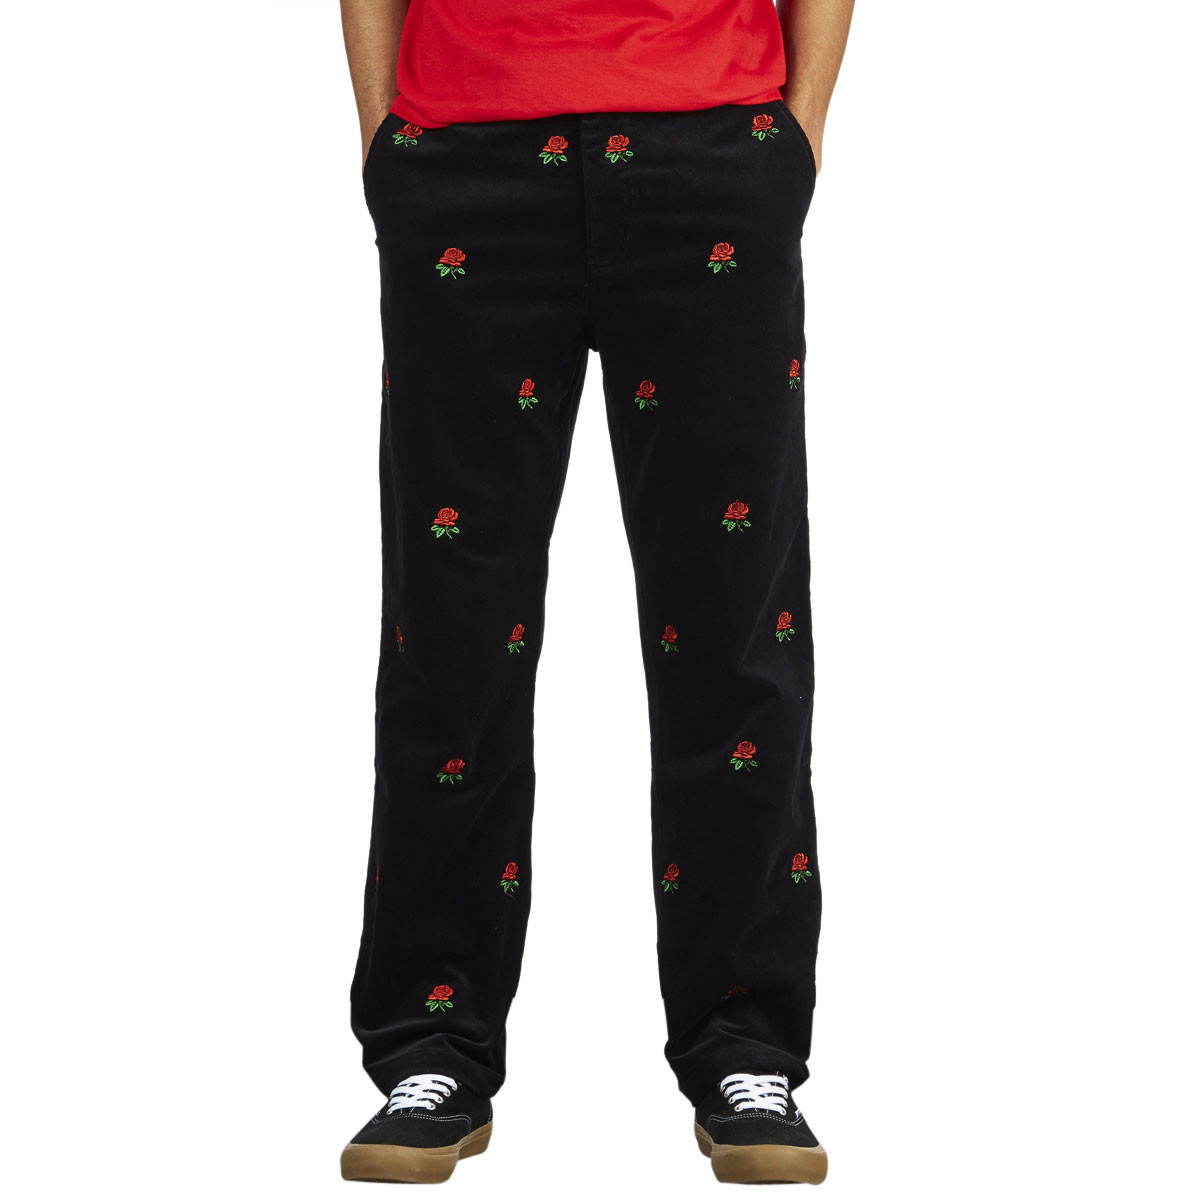 d9acd62ecc477 Butter Goods Rose Corduroy Pants - Black - LG